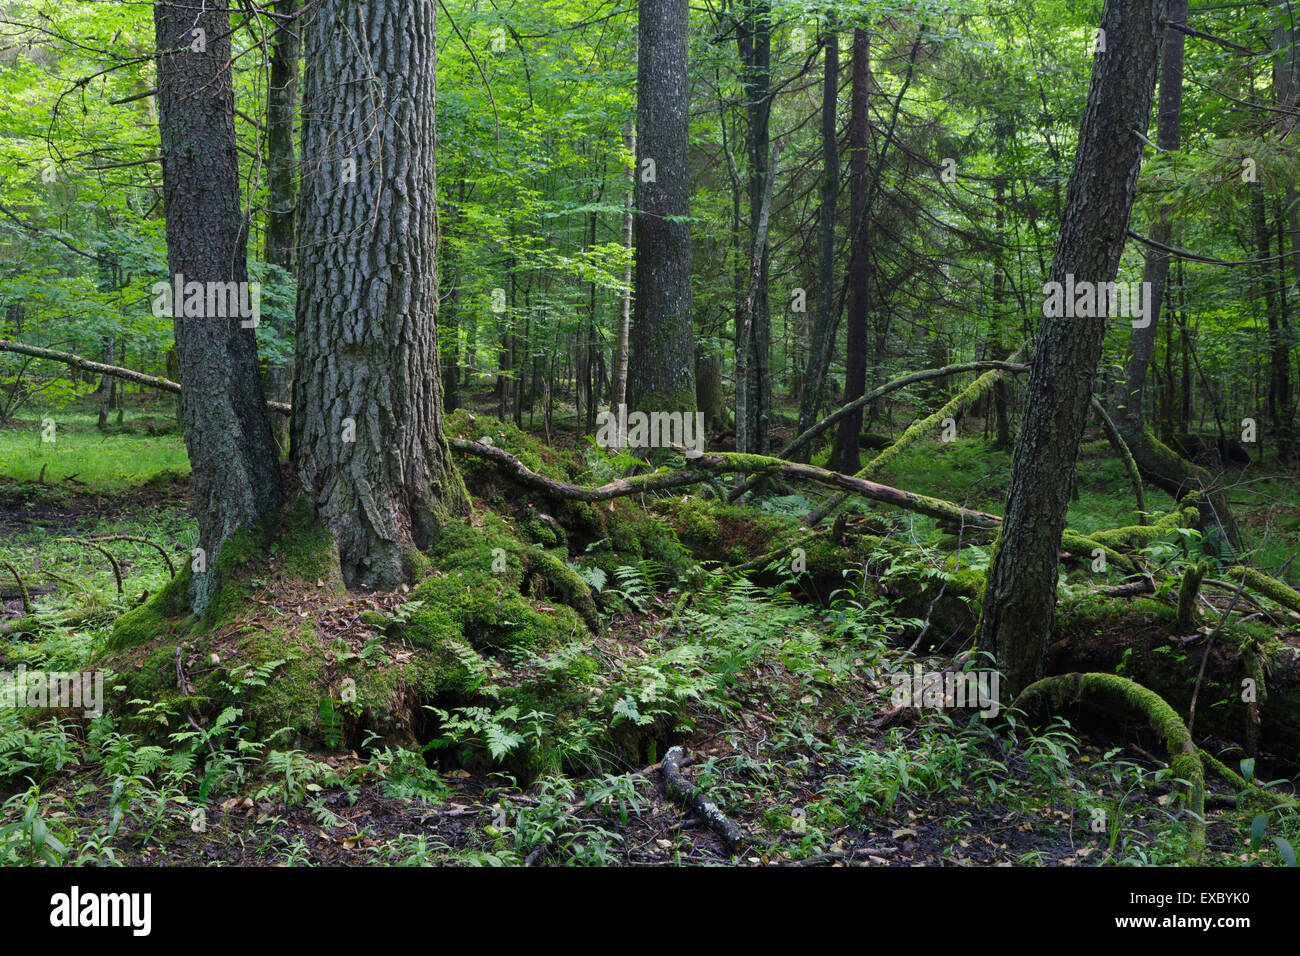 Primeval deciduous stand of Bialowieza Forest in summer with old alder tree in foreground - Stock Image